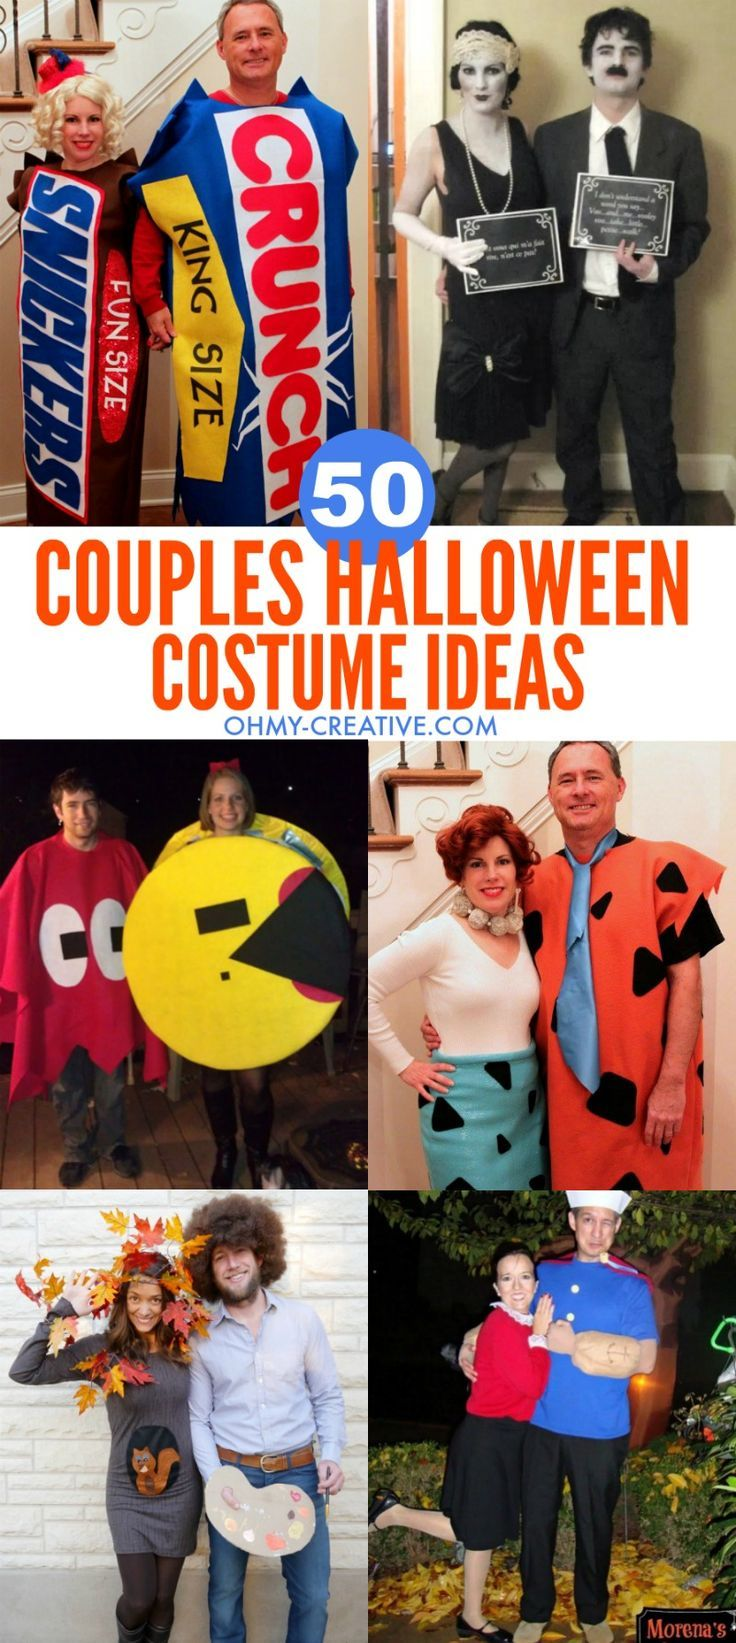 50 Couples Halloween Costume Ideas  sc 1 st  Pinterest : halloween costumes in pairs  - Germanpascual.Com